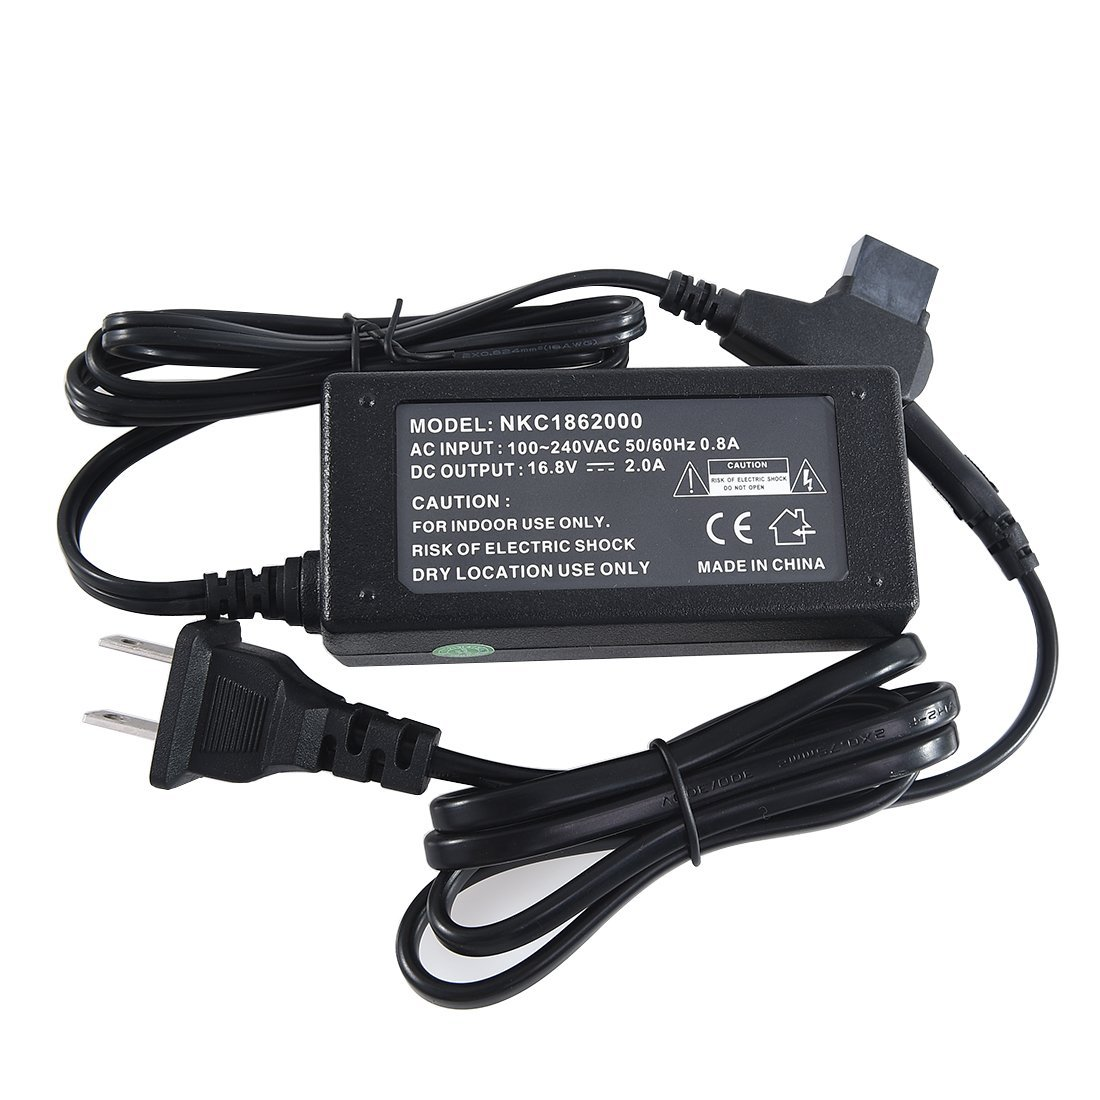 DSTE NKC1682000 Replacement Charger for Sony BP-95W BP-150W AN150W V Mount V Lock Battery,Professional Video Camcorders HDW-800P PDW-850 DSR-650P PDW-680 HDW-F900R HDW-800P PMW-F55 PMW-F5